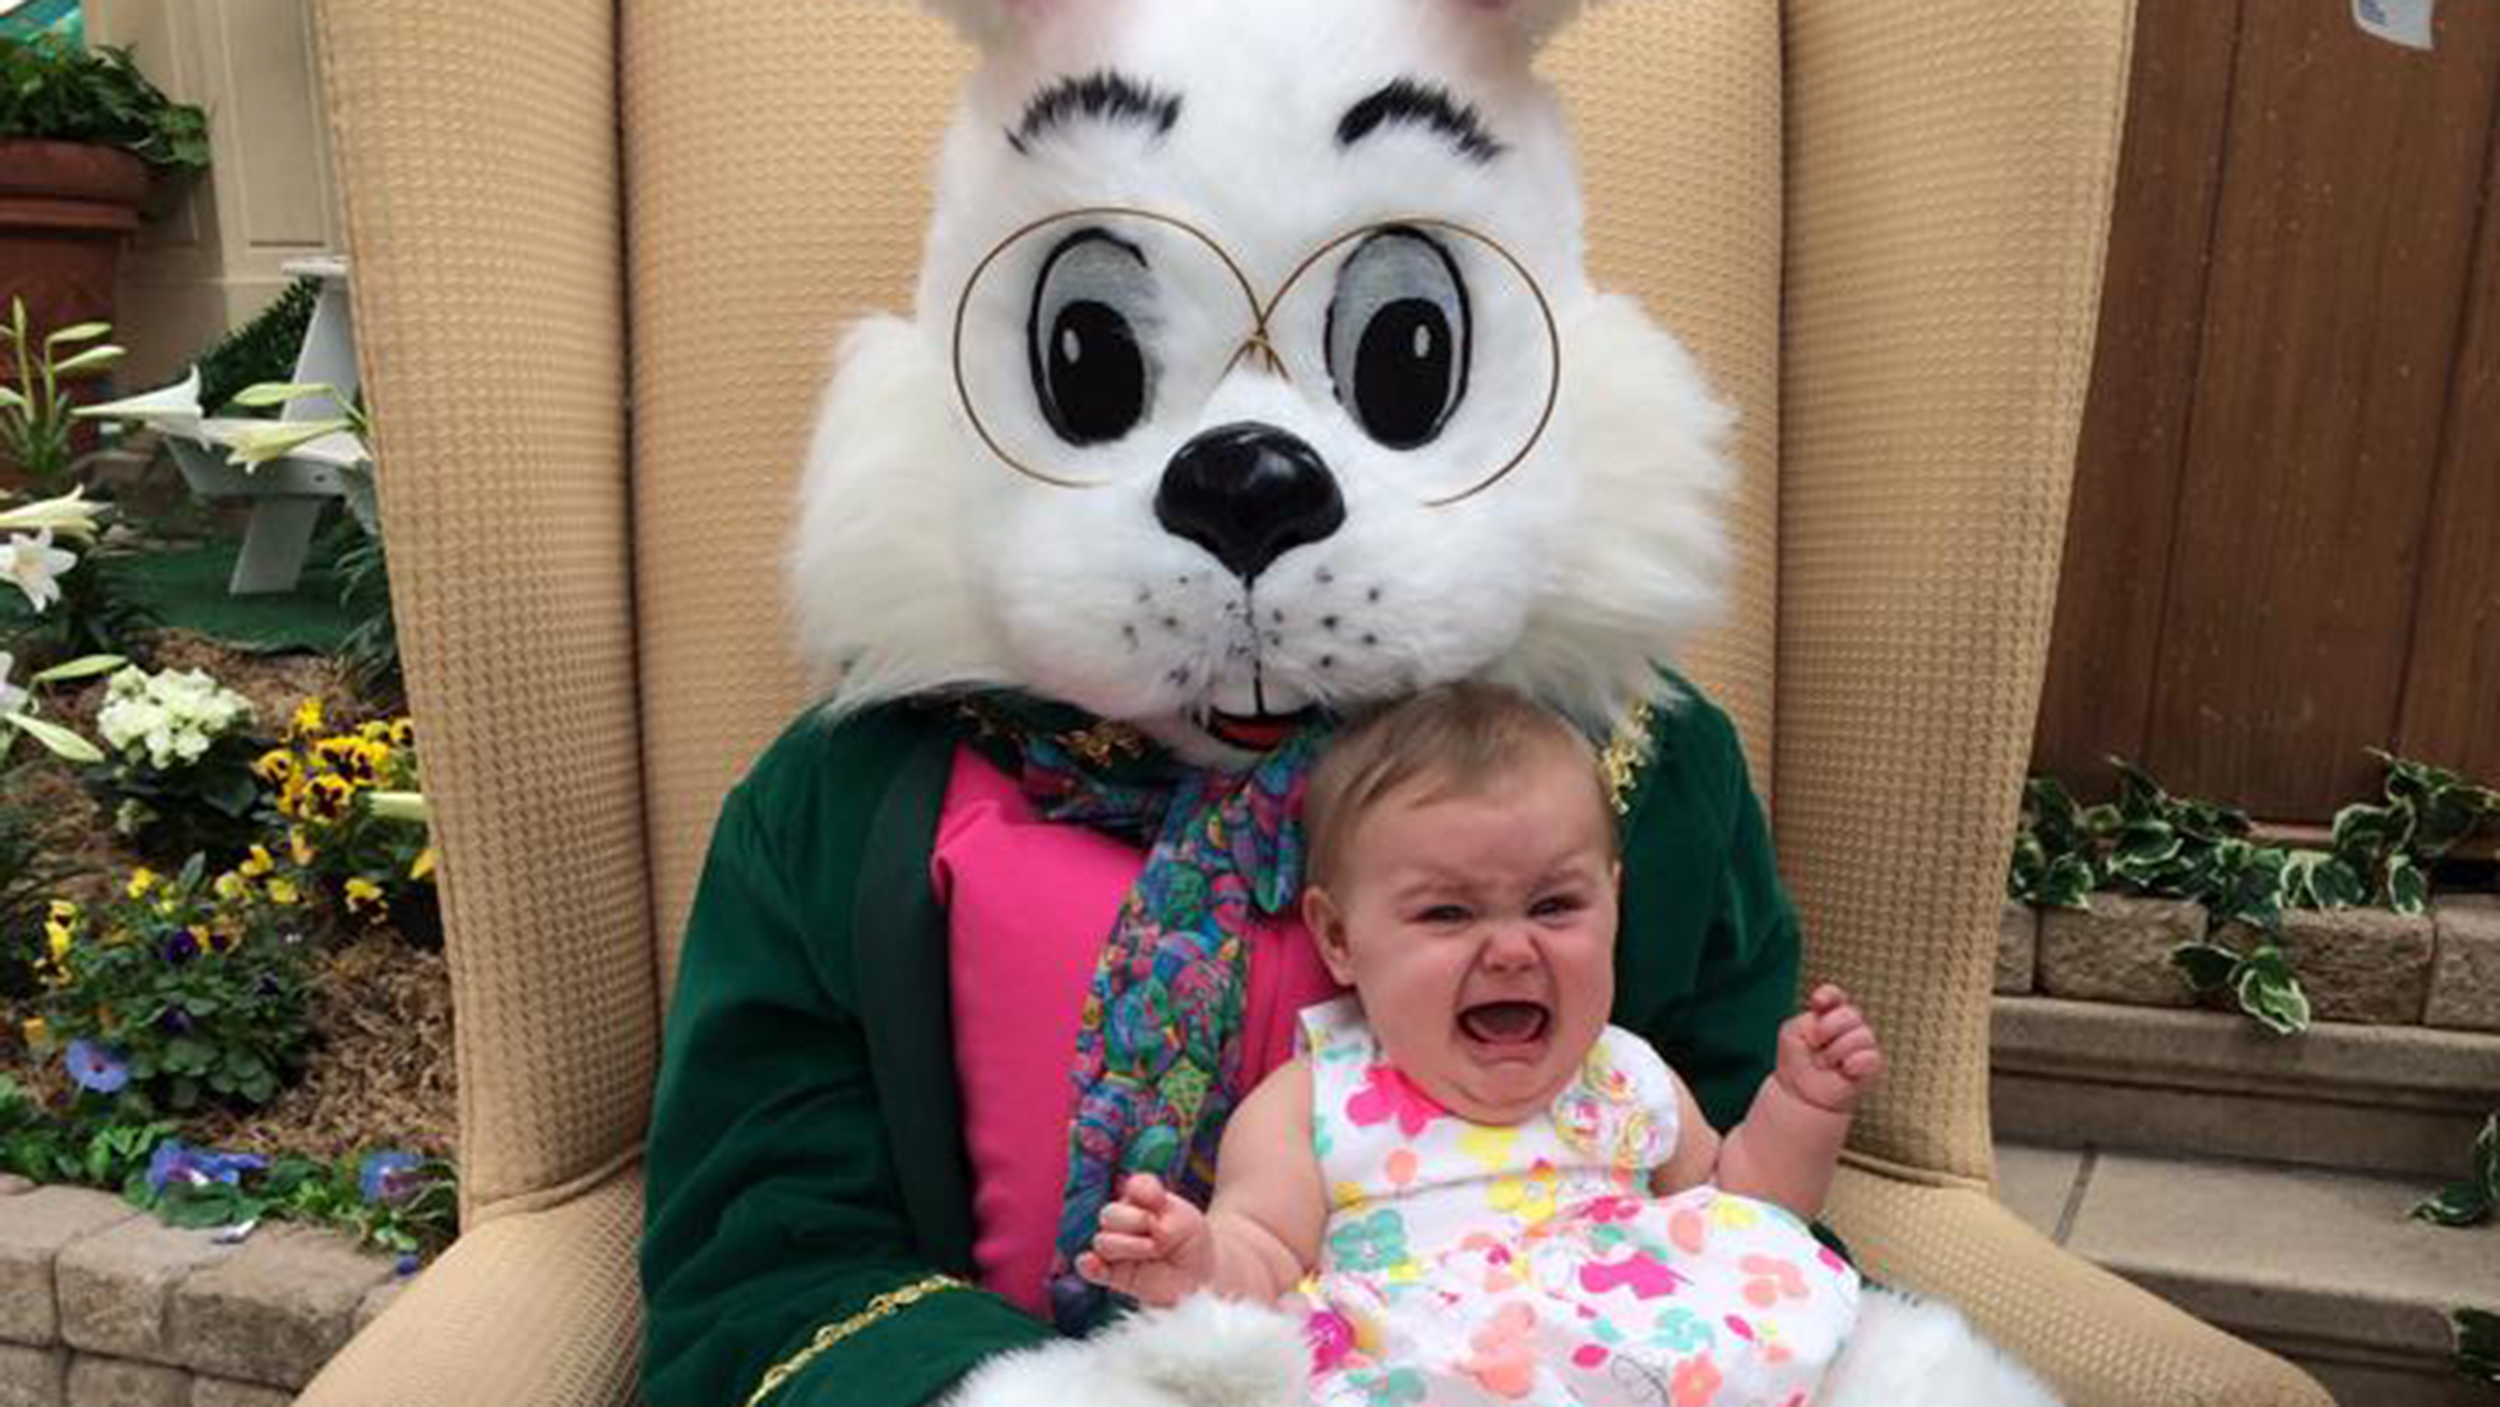 Kids scared of the Easter Bunny? Well, look at him! - TODAY.com